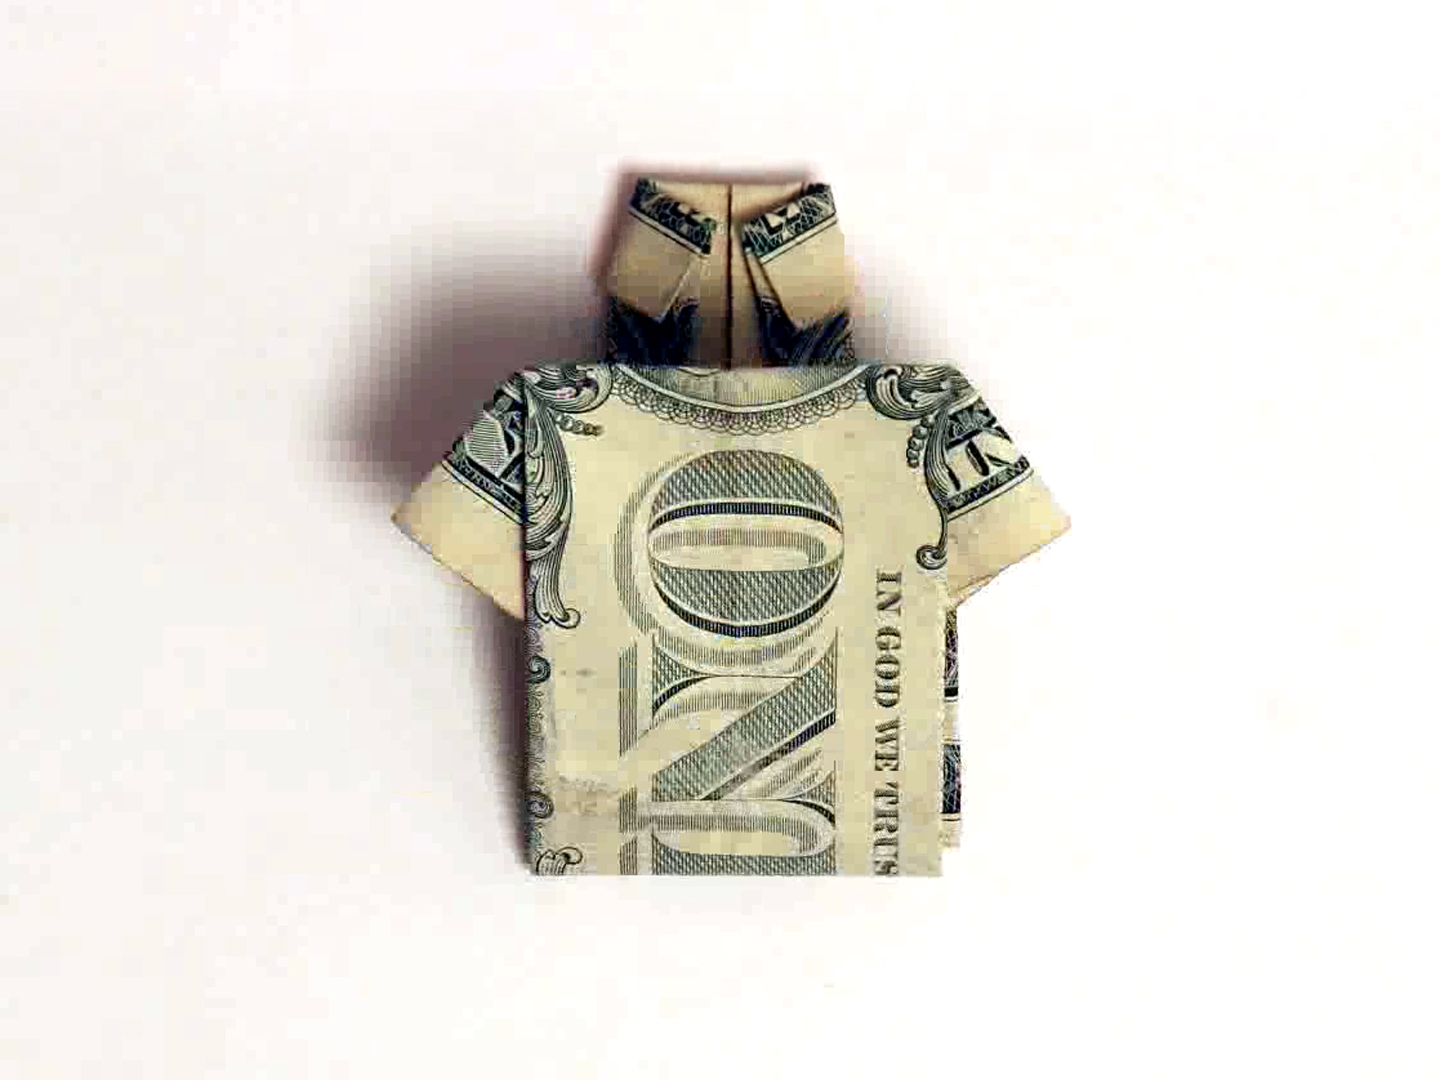 Origami Dollar Bill Shirt With Tie How To Make A Shirt Out Of A One Dollar Bill 8 Steps